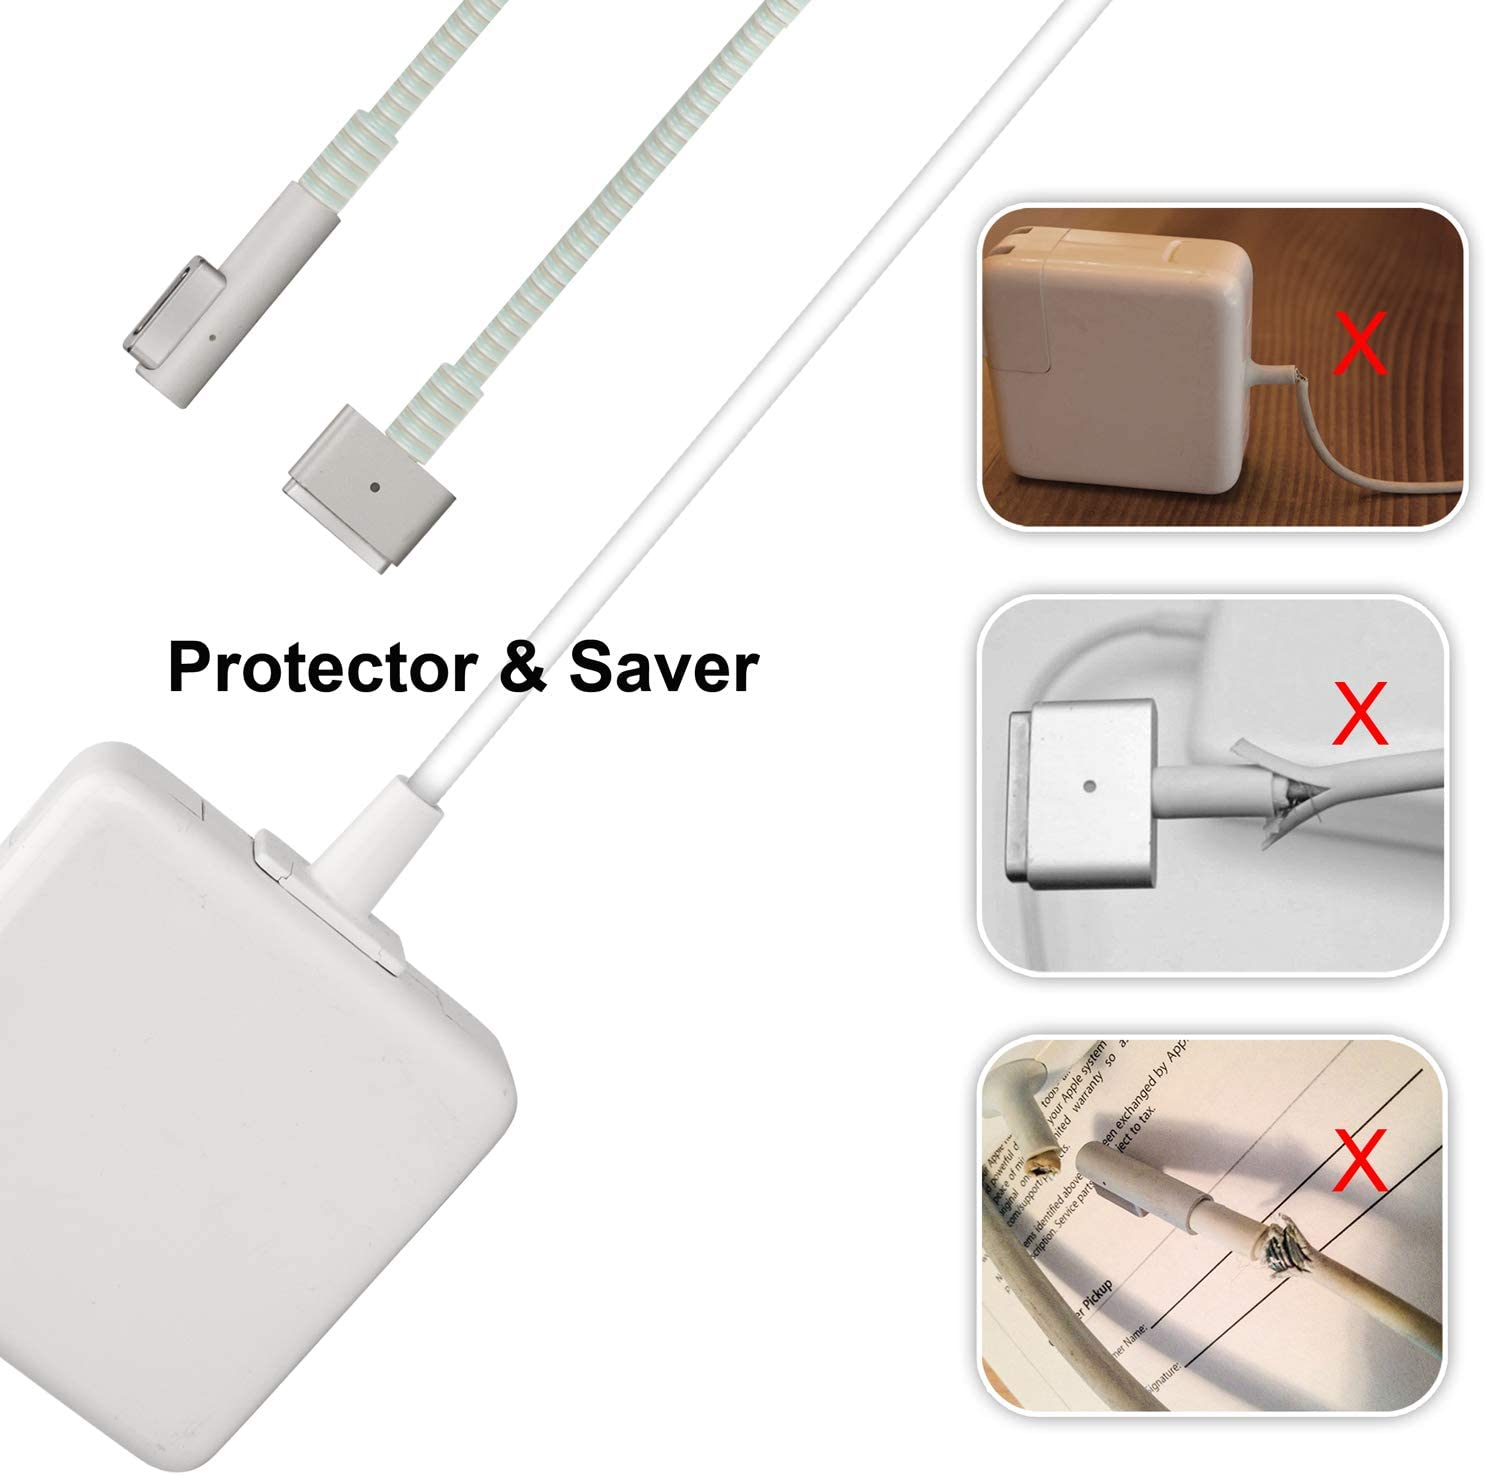 Charger Cable Protector for Mac-Book,Adapter Cable Saver Compatible with 45W/60W/85W, Dual Ends Protector,1Pack